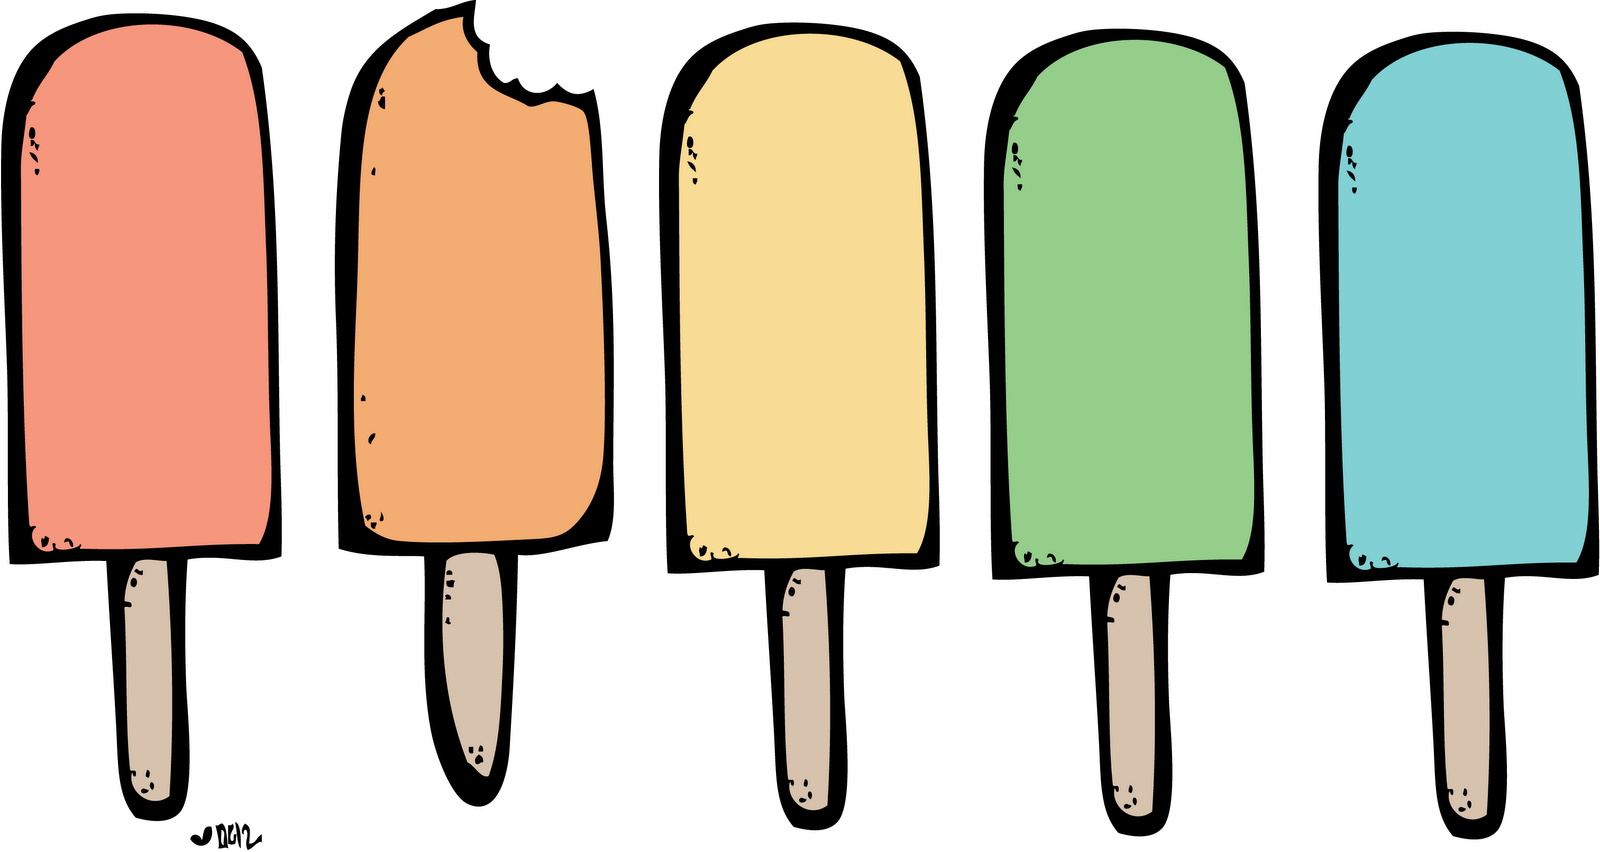 picture Ice cream popsicle clipart. Image high five board